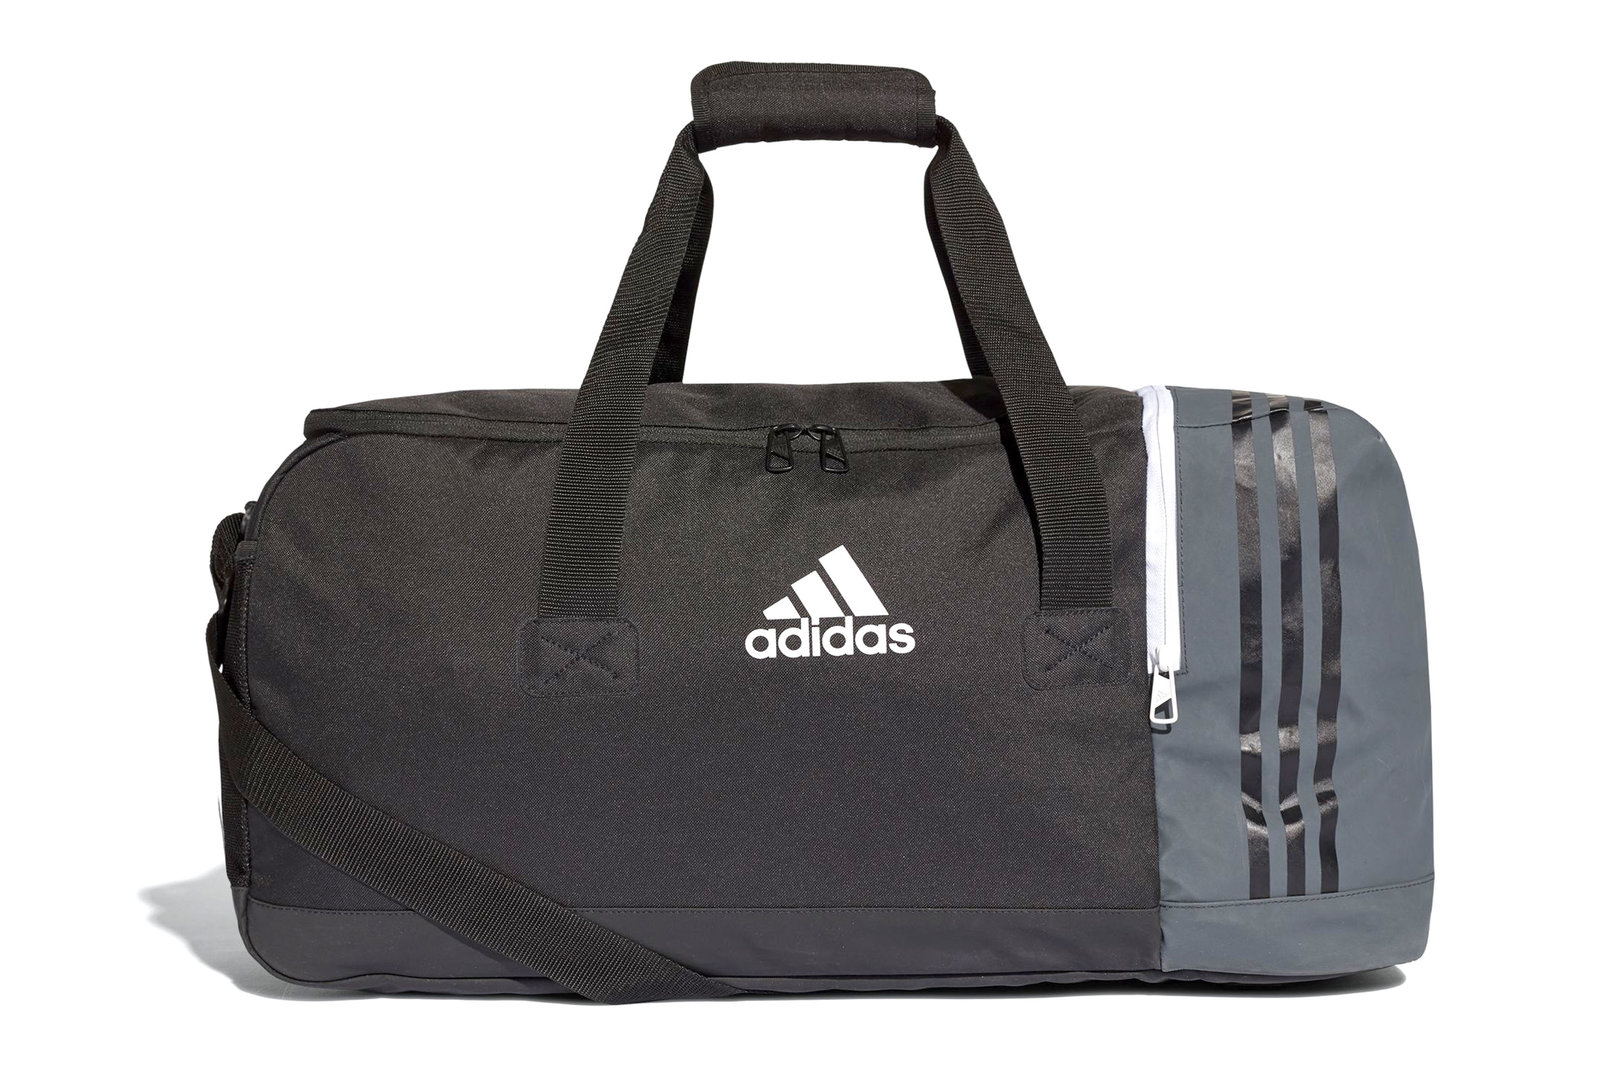 f4964f004b adidas Mens Tiro Medium Match Day Team Sport Gym Bag Duffel Bag Black